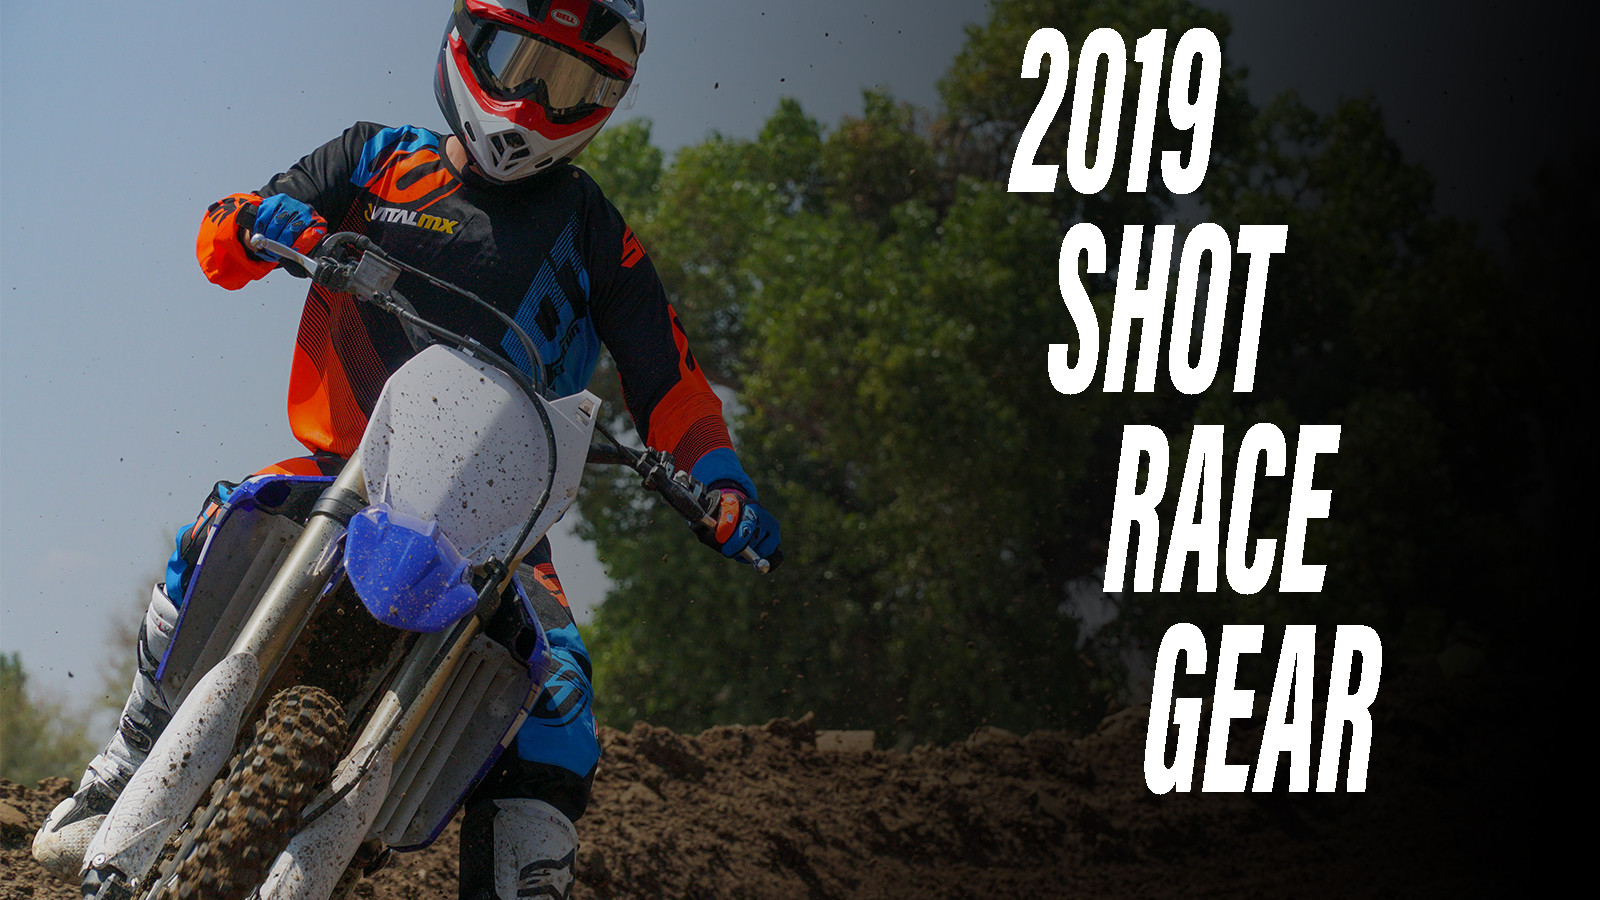 VIDEO: 2019 Shot Race Gear Intro